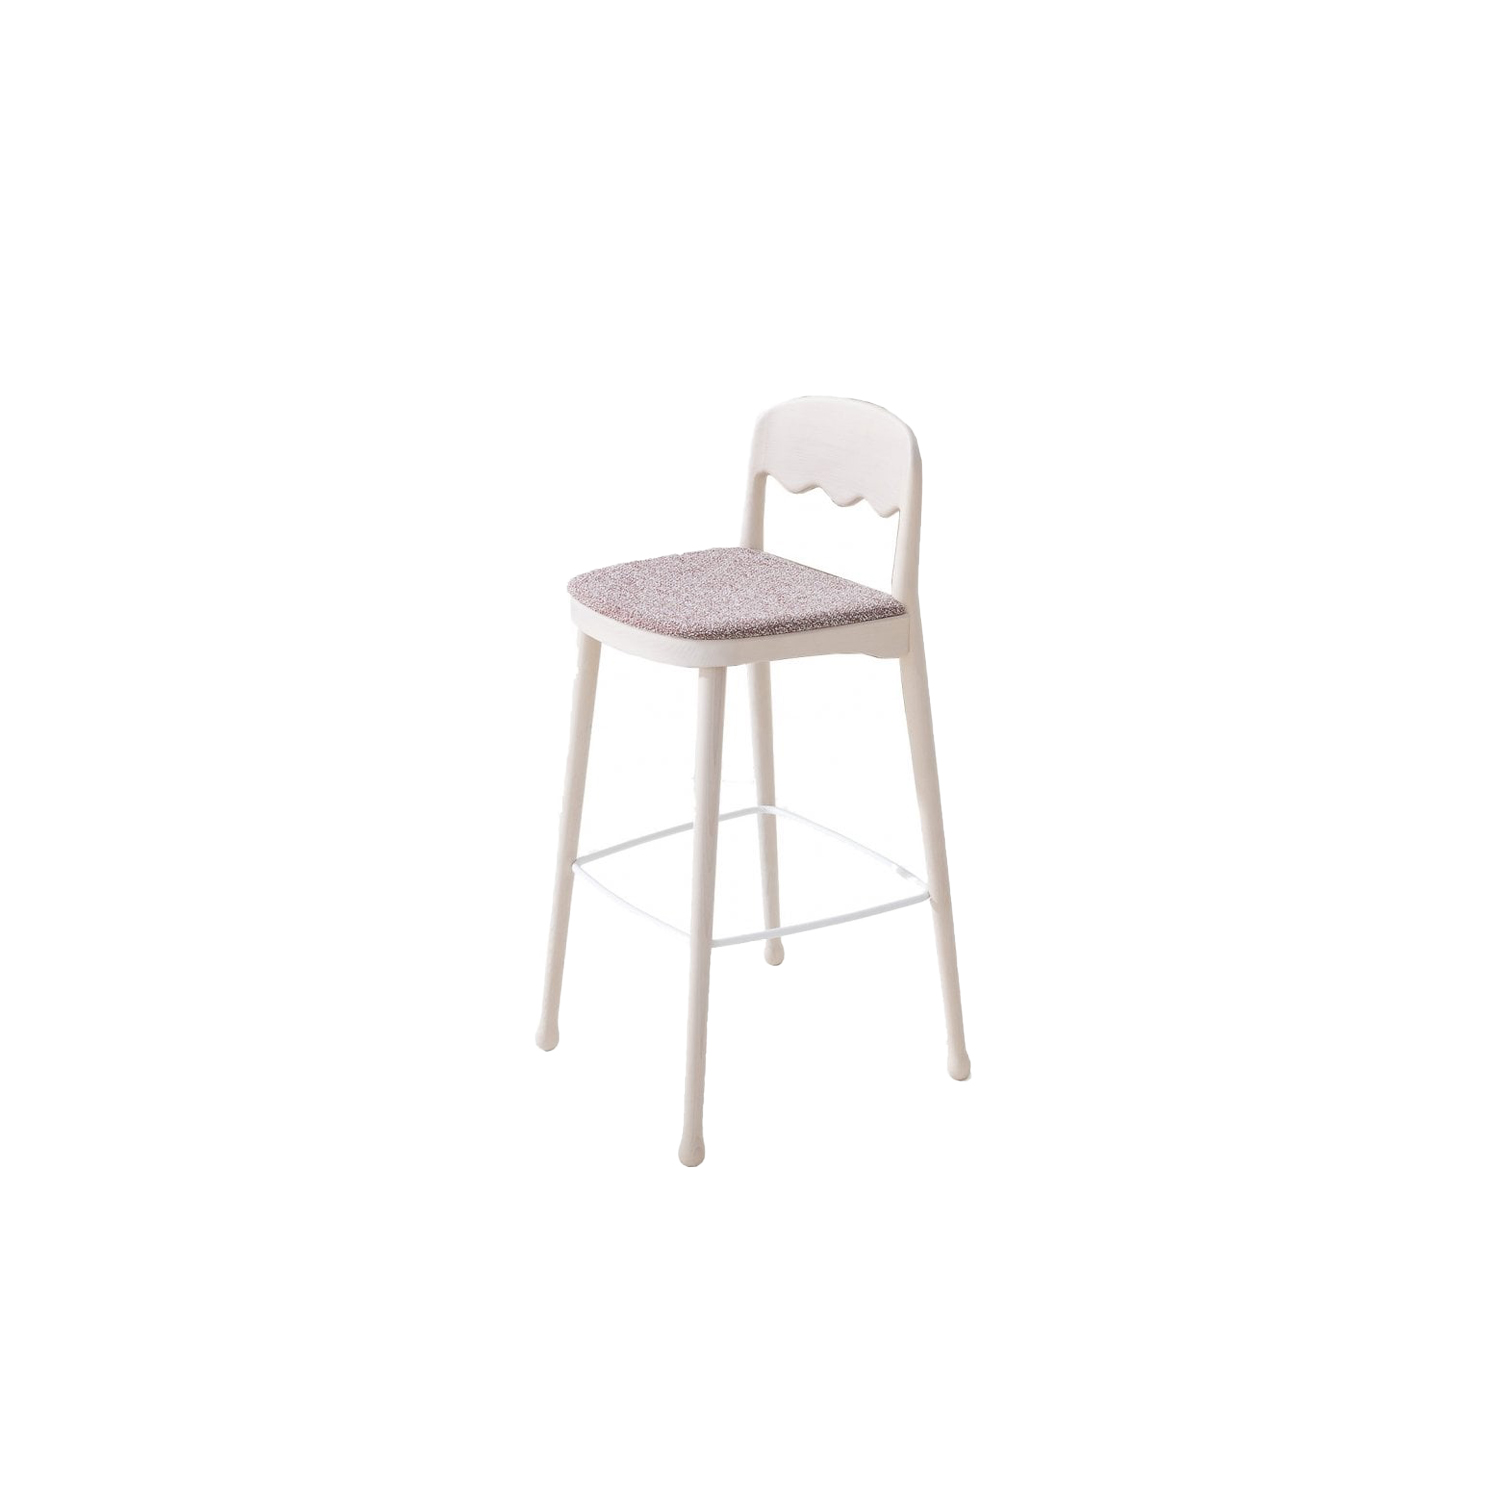 Frisee Upholstered Barstool - The Frisee Barstool is perfect for breakfast bars or indoor bars and would look aesthetically pleasing in a group for example in a two or a four. This Barstool has an upholstered seat which can be fabric, leather or you can choose your own material. The frame comes in either Ash or Beech and can be lacquered.  The wavy design of the back rest is unique yet simple, it keeps its ergonomic form while adding personality to the barstool. Please enquire for more information and finishes.   Matter of Stuff